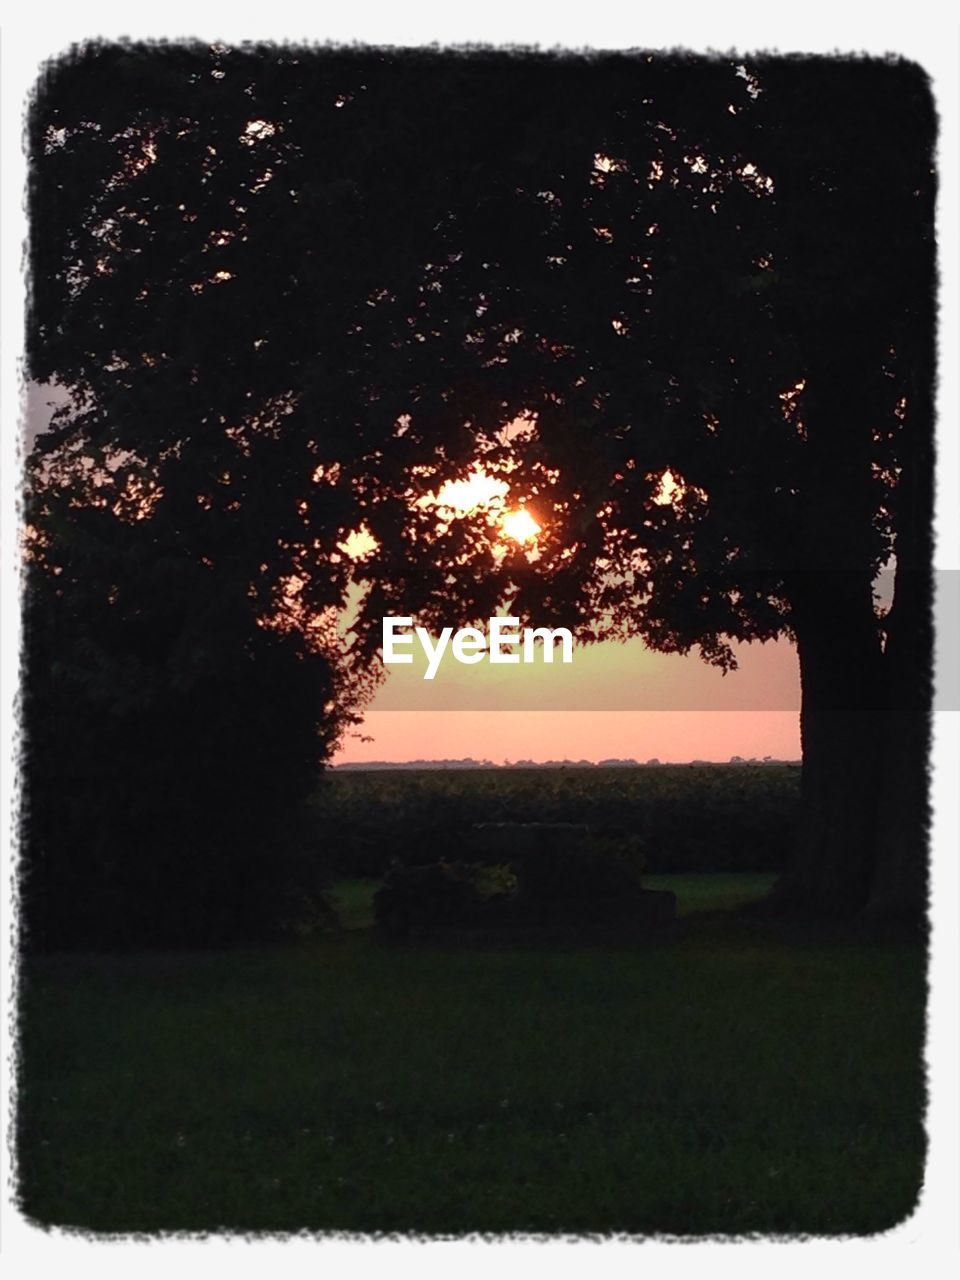 tree, no people, field, grass, outdoors, nature, landscape, sunset, tranquility, sky, day, beauty in nature